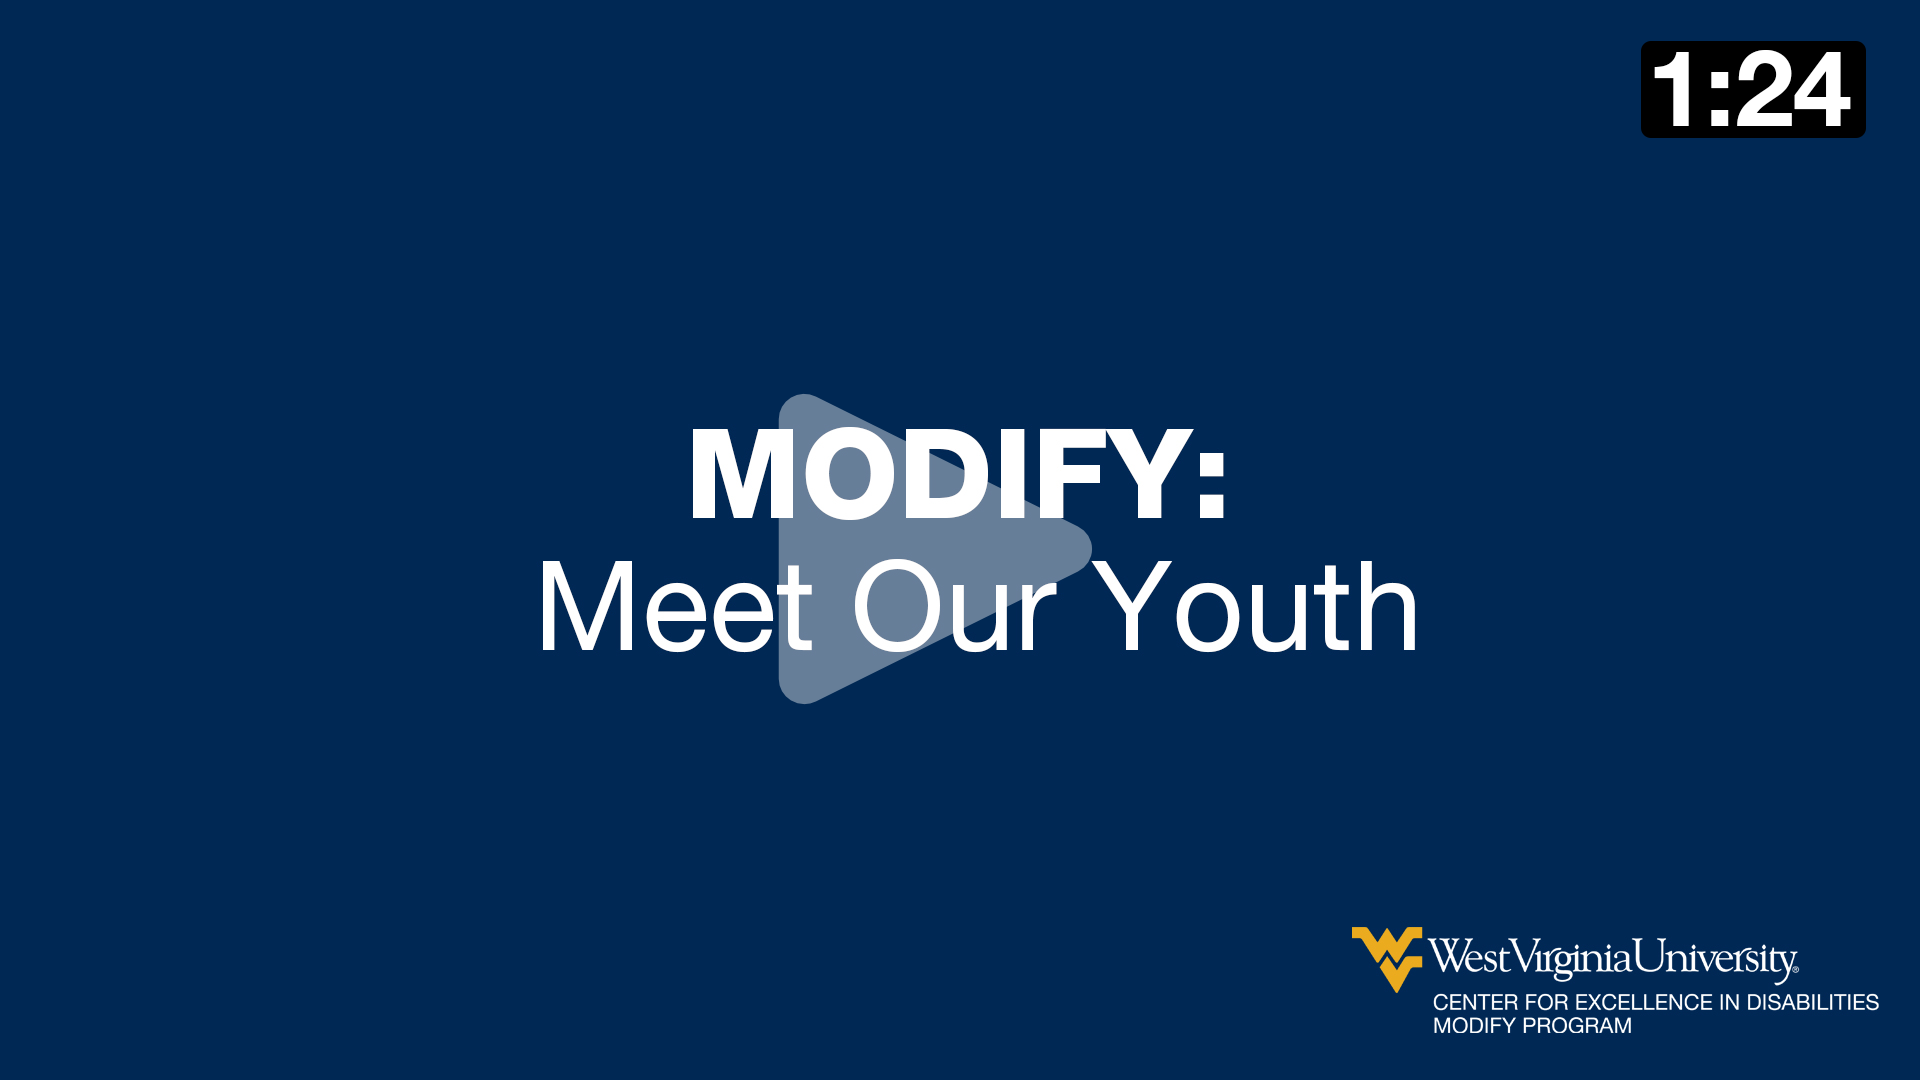 MODIFY: Meet our Youth